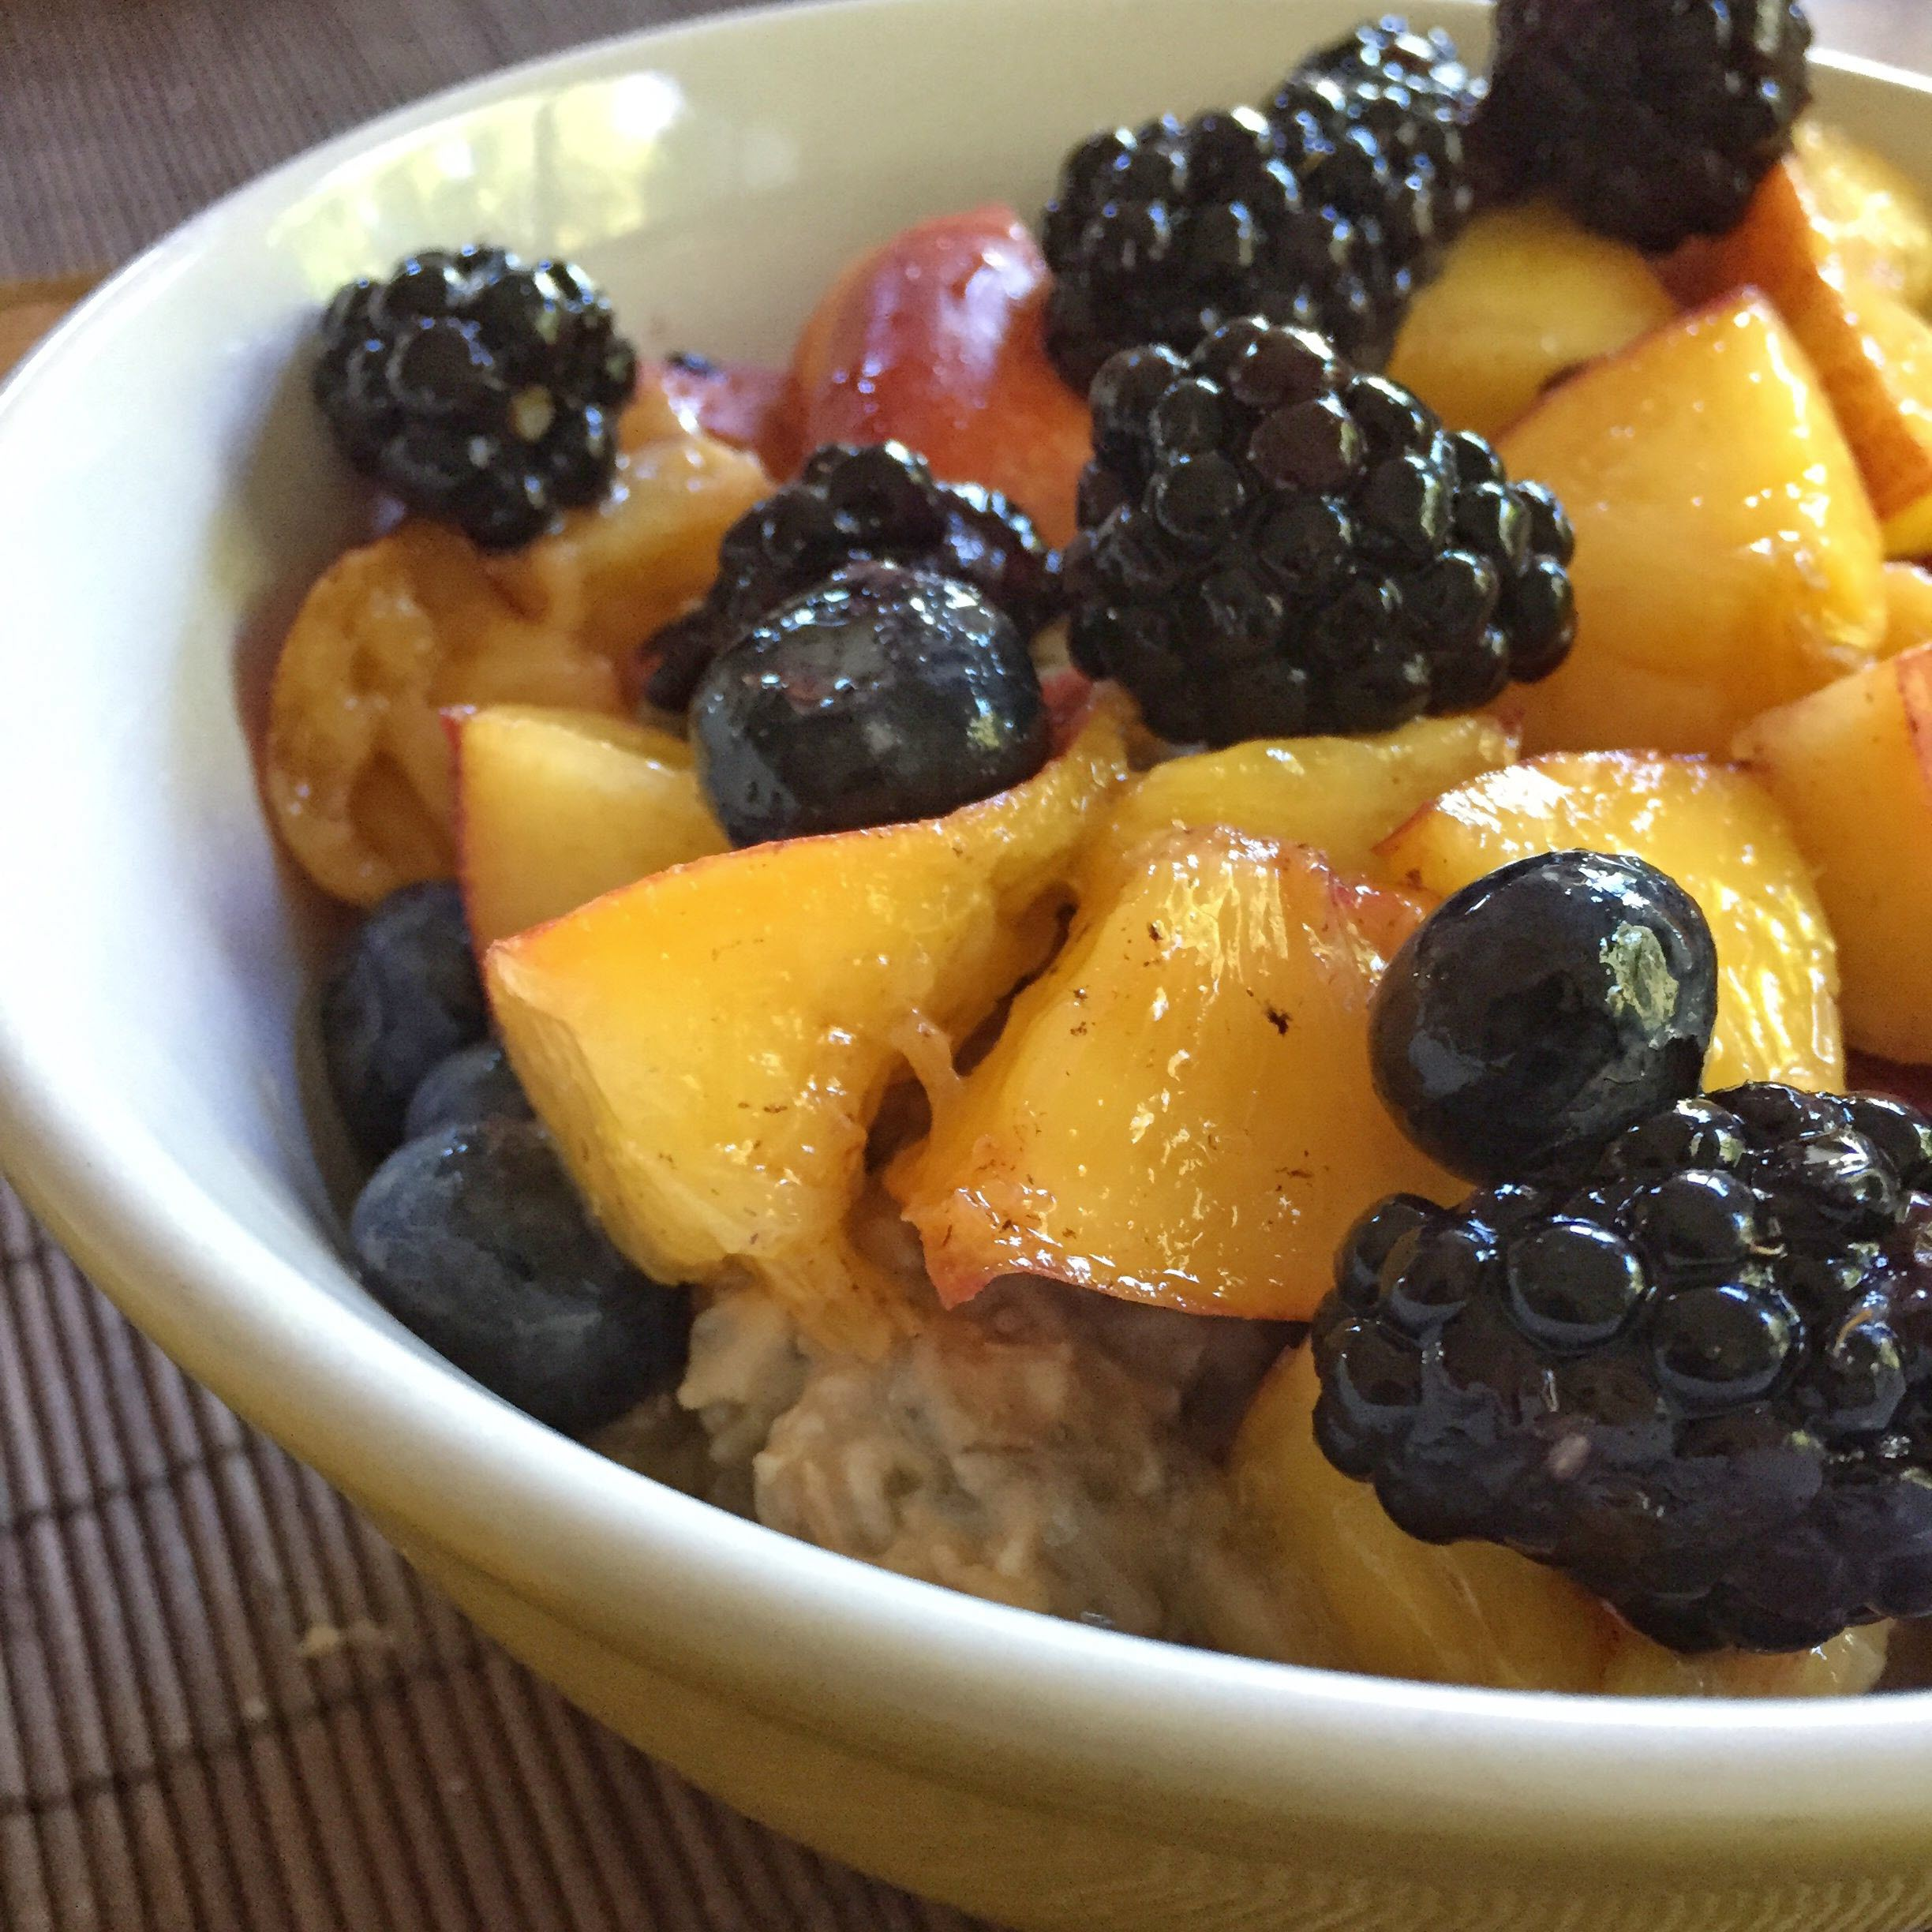 Vegan Overnight Oats with Chia Seeds and Fruit